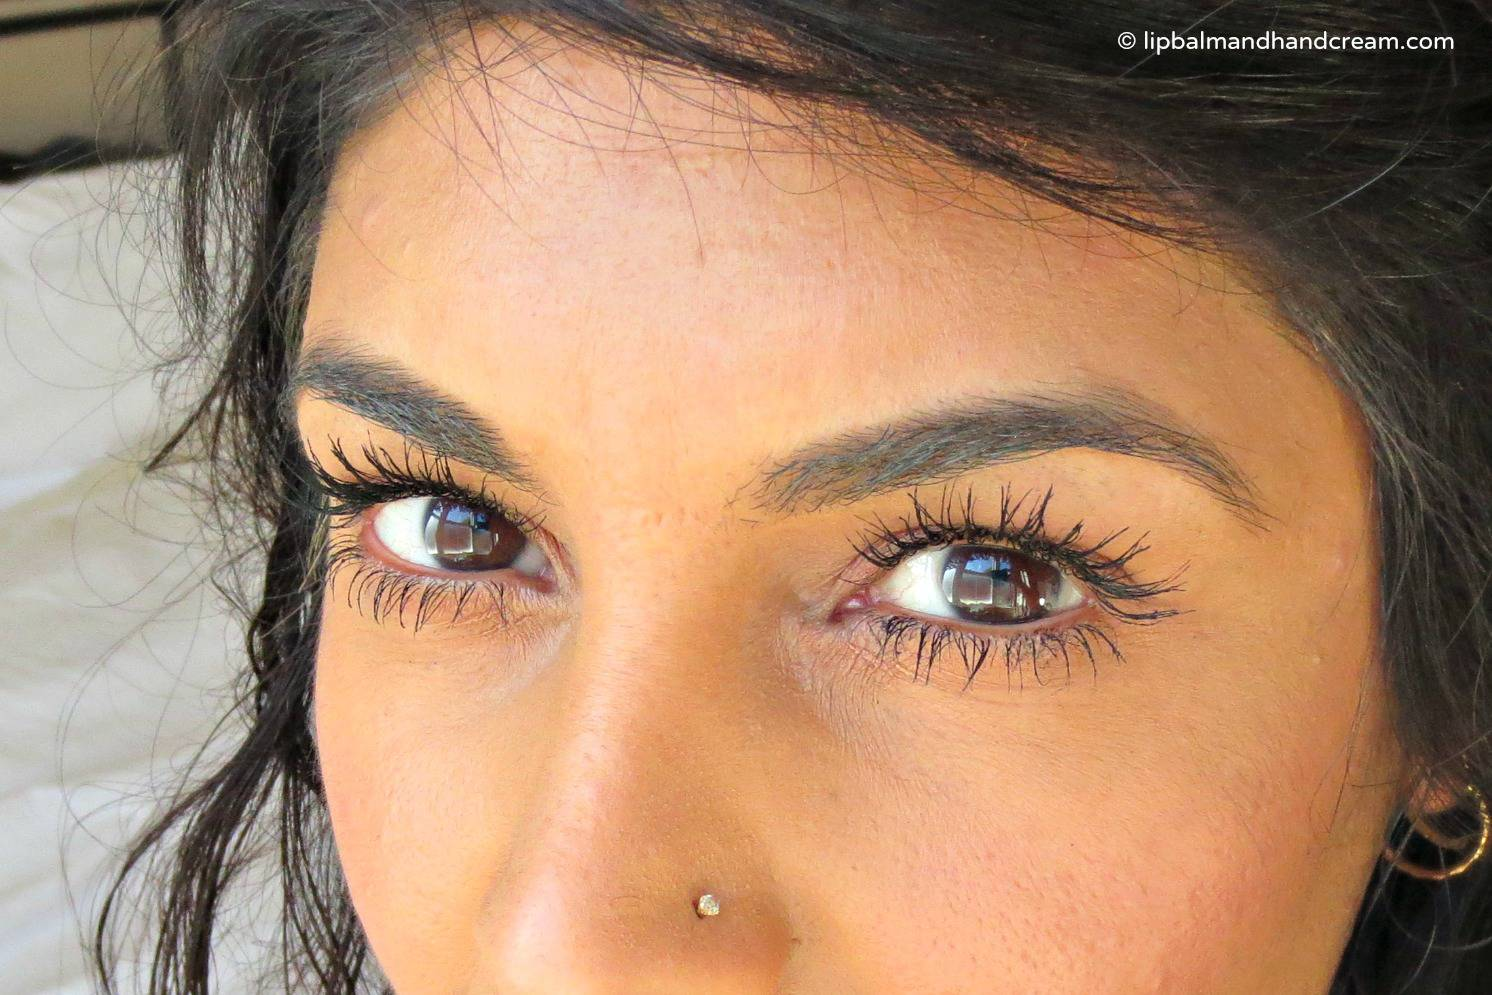 The question I get asked the most – how do I stop mascara from smudging under my eyes?